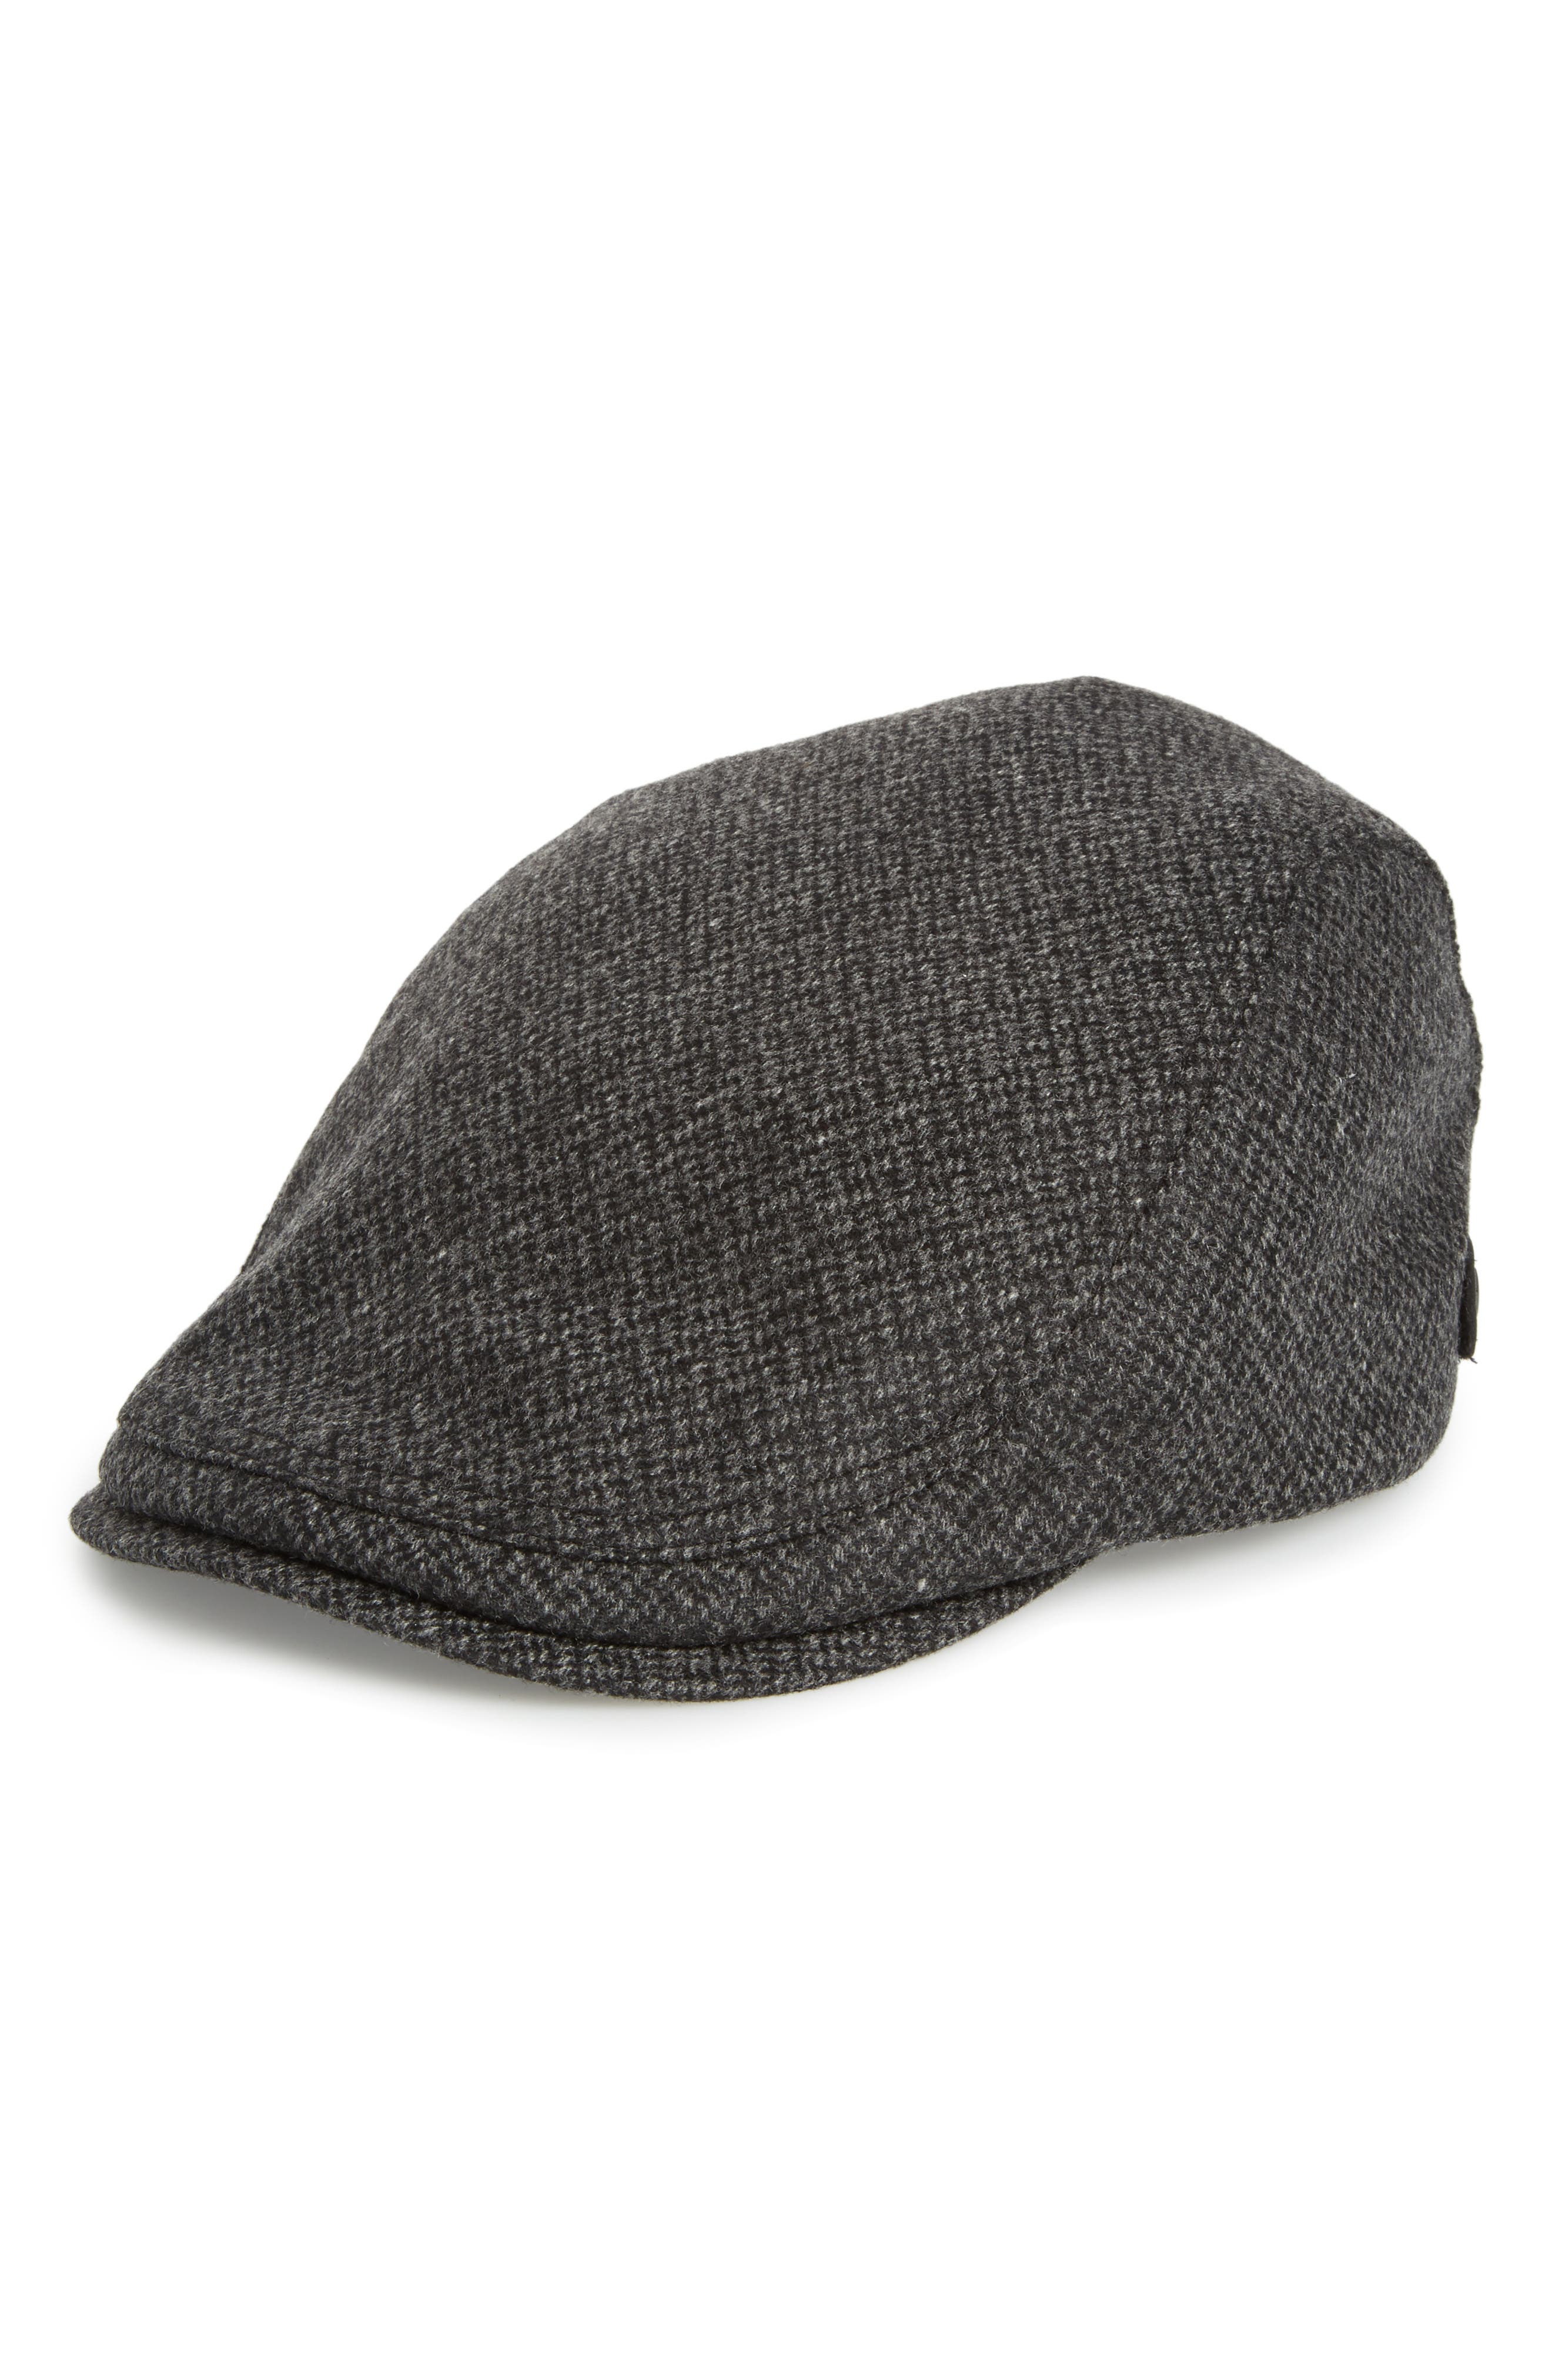 Ted Baker Thompson Wool Blend Flat Driving Cap,                             Main thumbnail 1, color,                             Charcoal